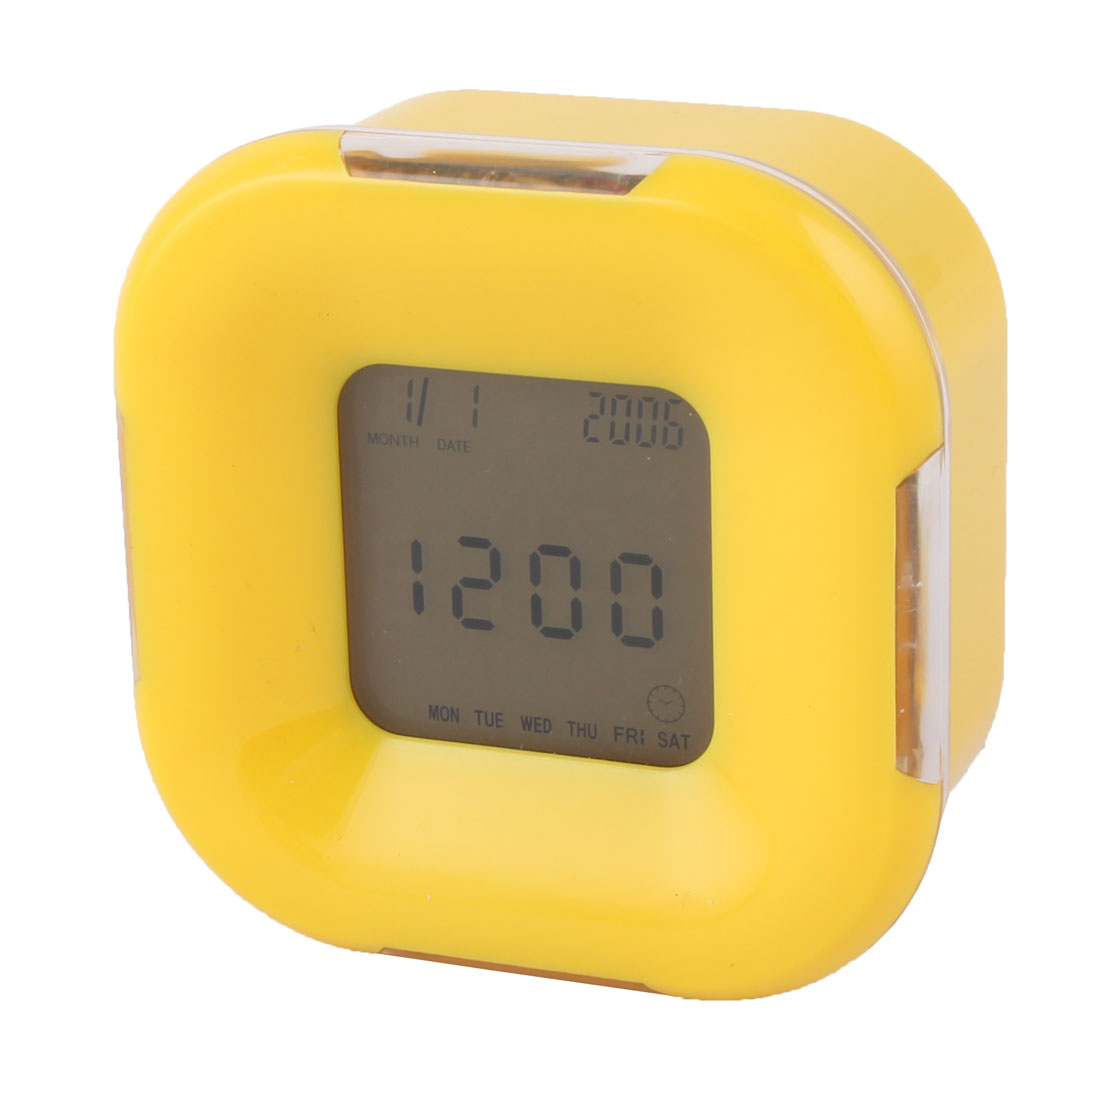 Pop Art Digital Square Clock - Yellow